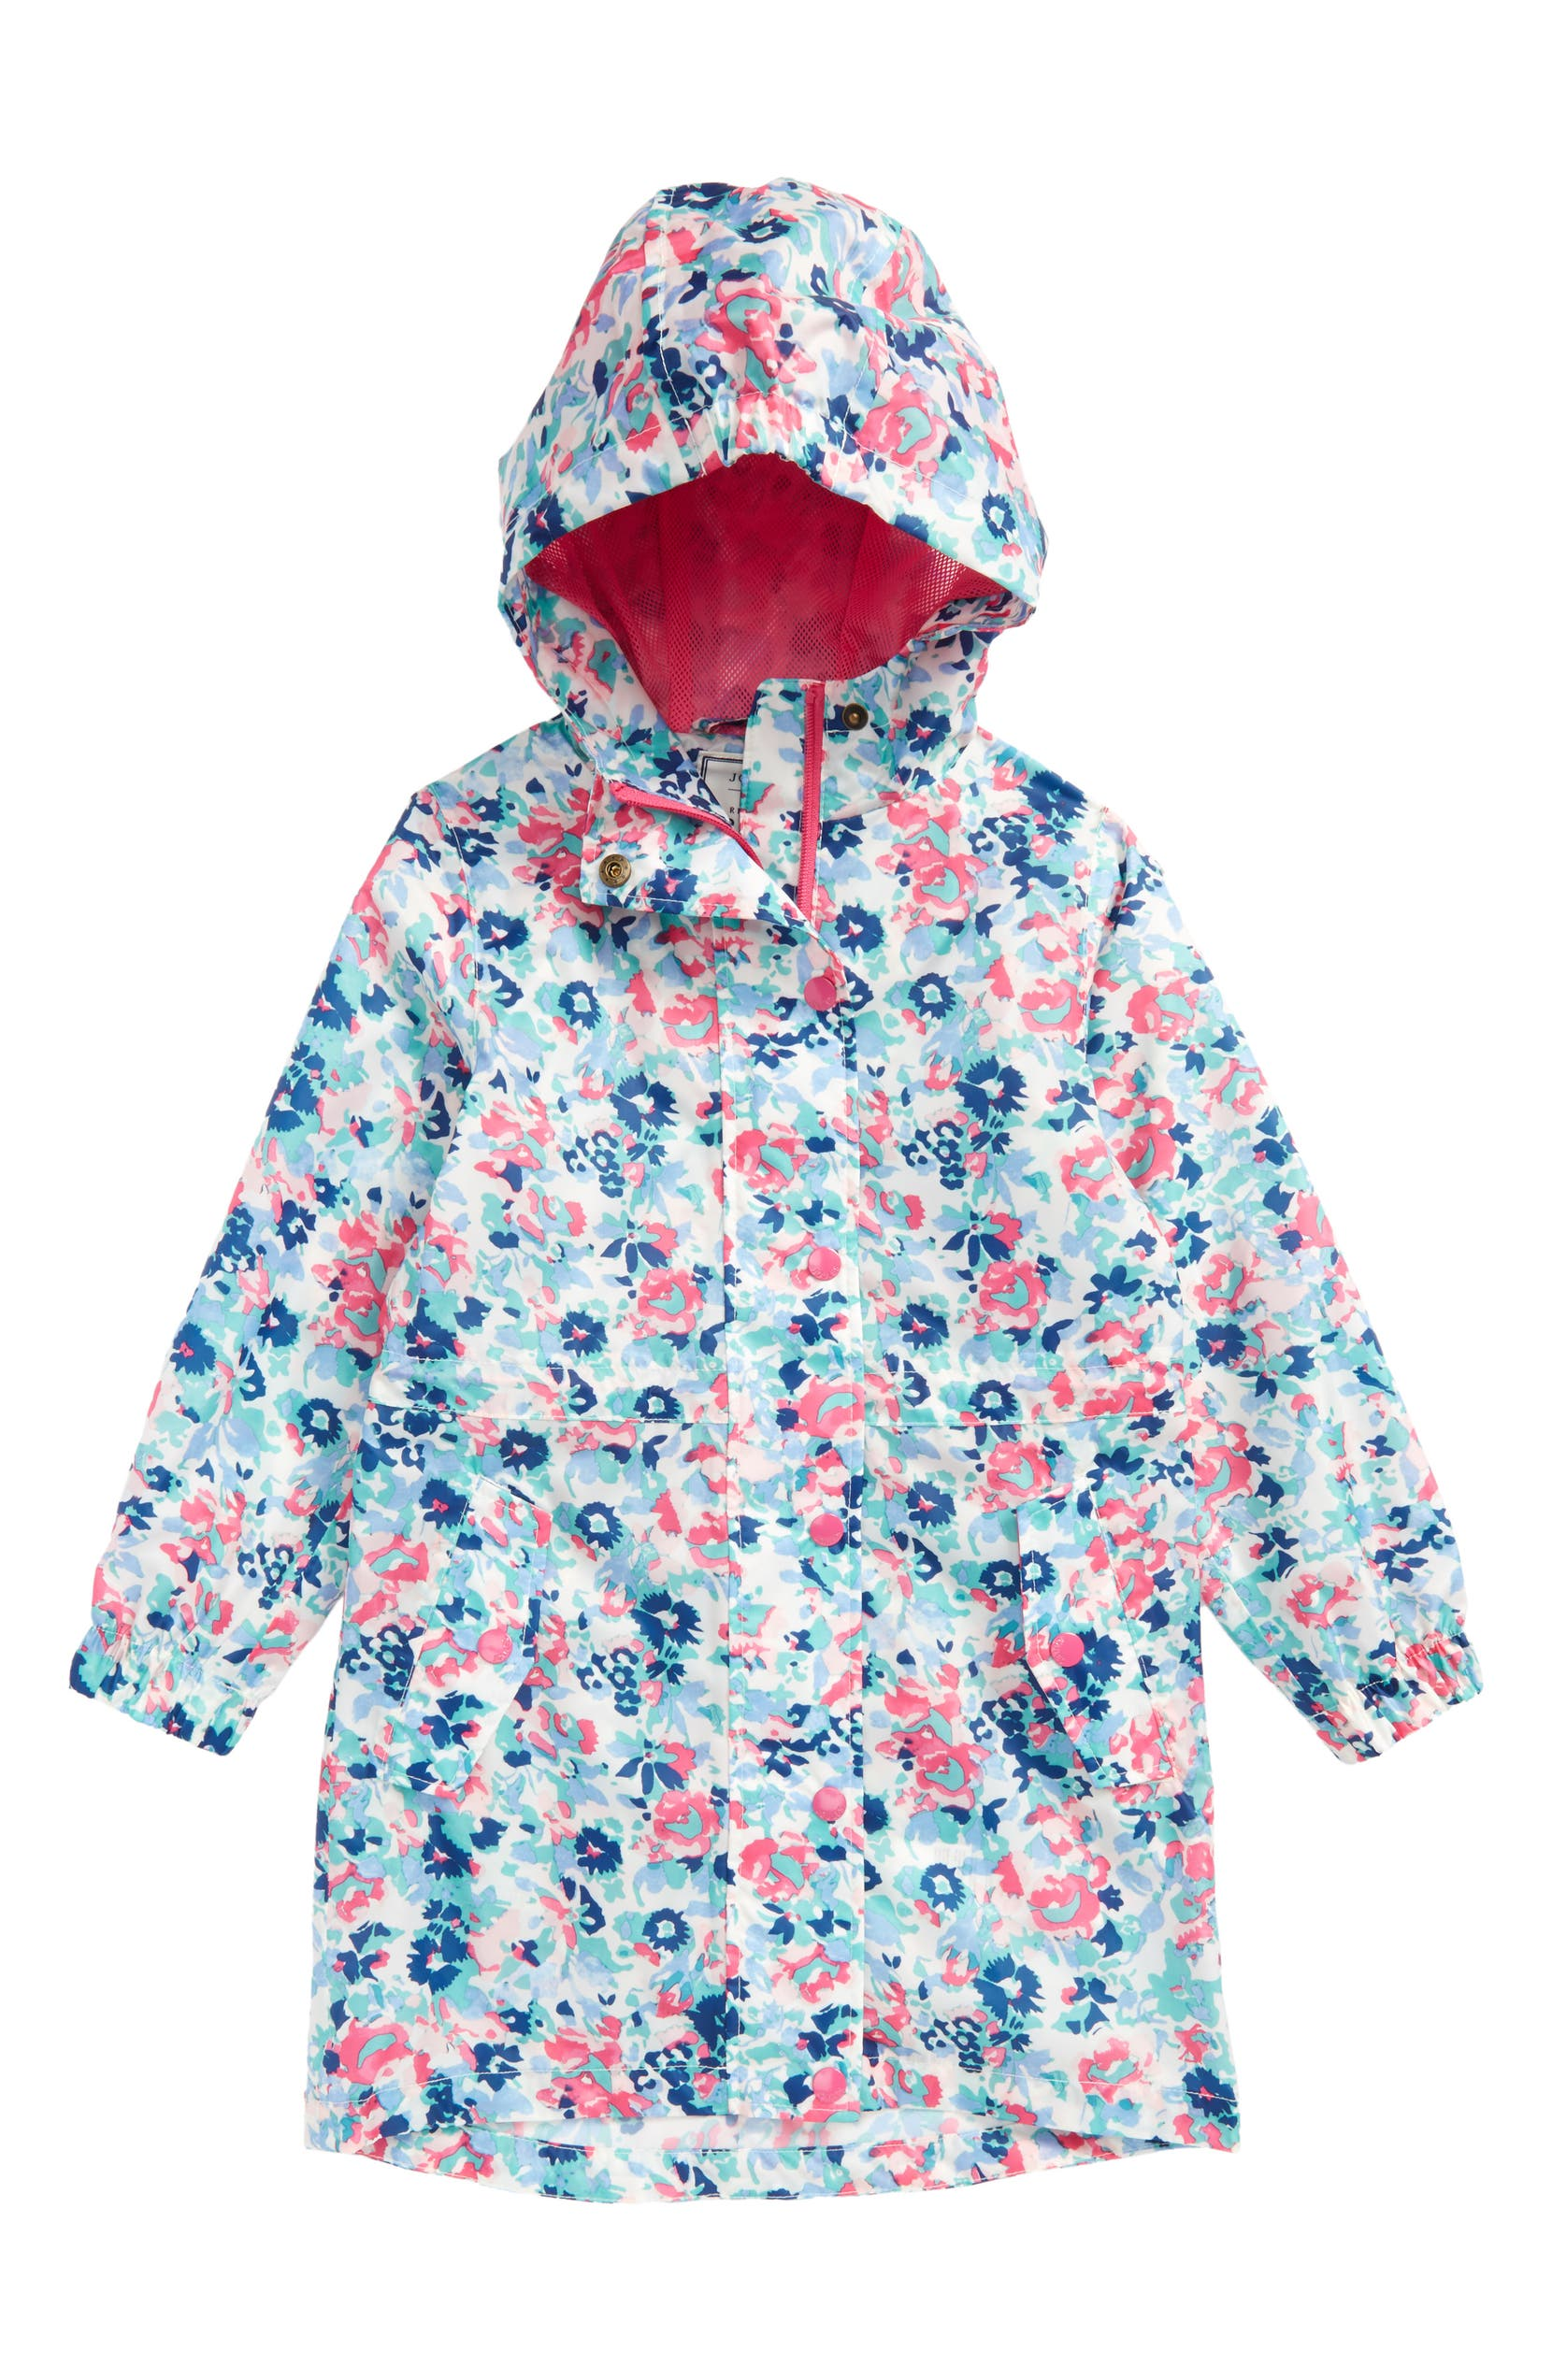 9a7cf3d655ab Joules Print Packaway Raincoat (Toddler Girls